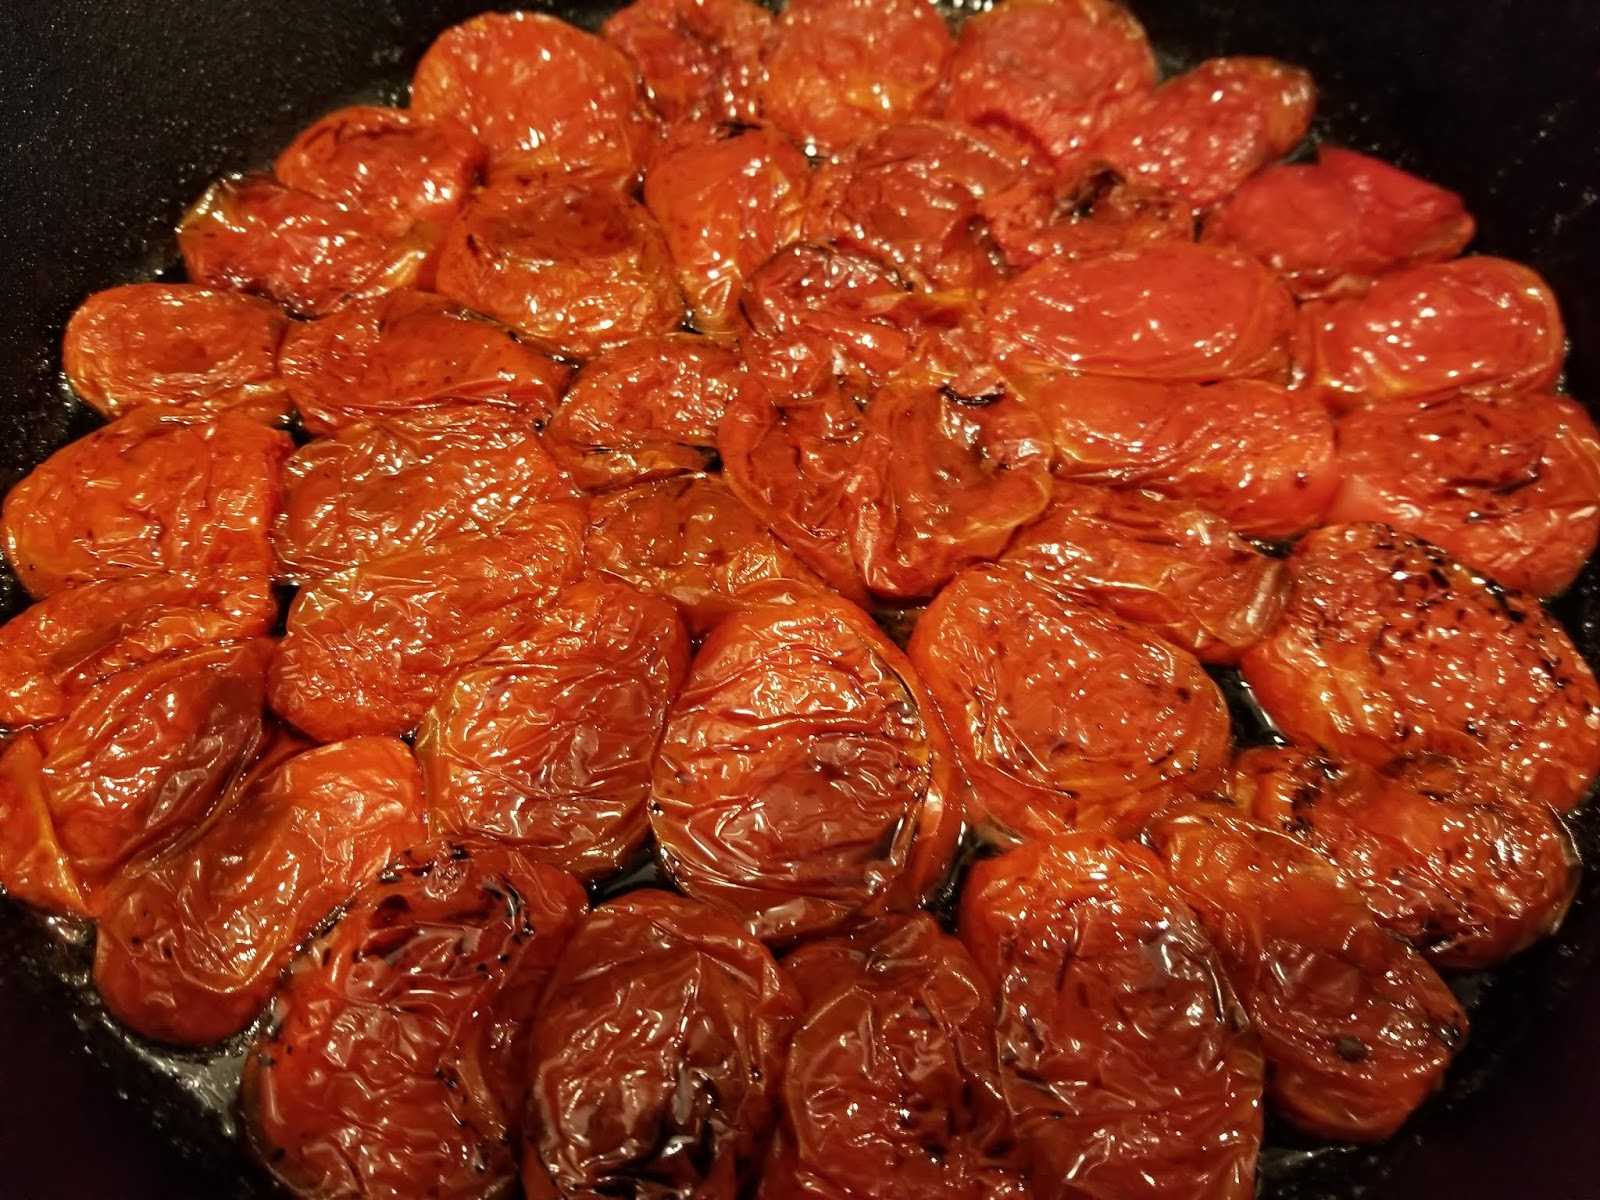 Oven roasted tomatoes arranged in 12 inch cast iron pan